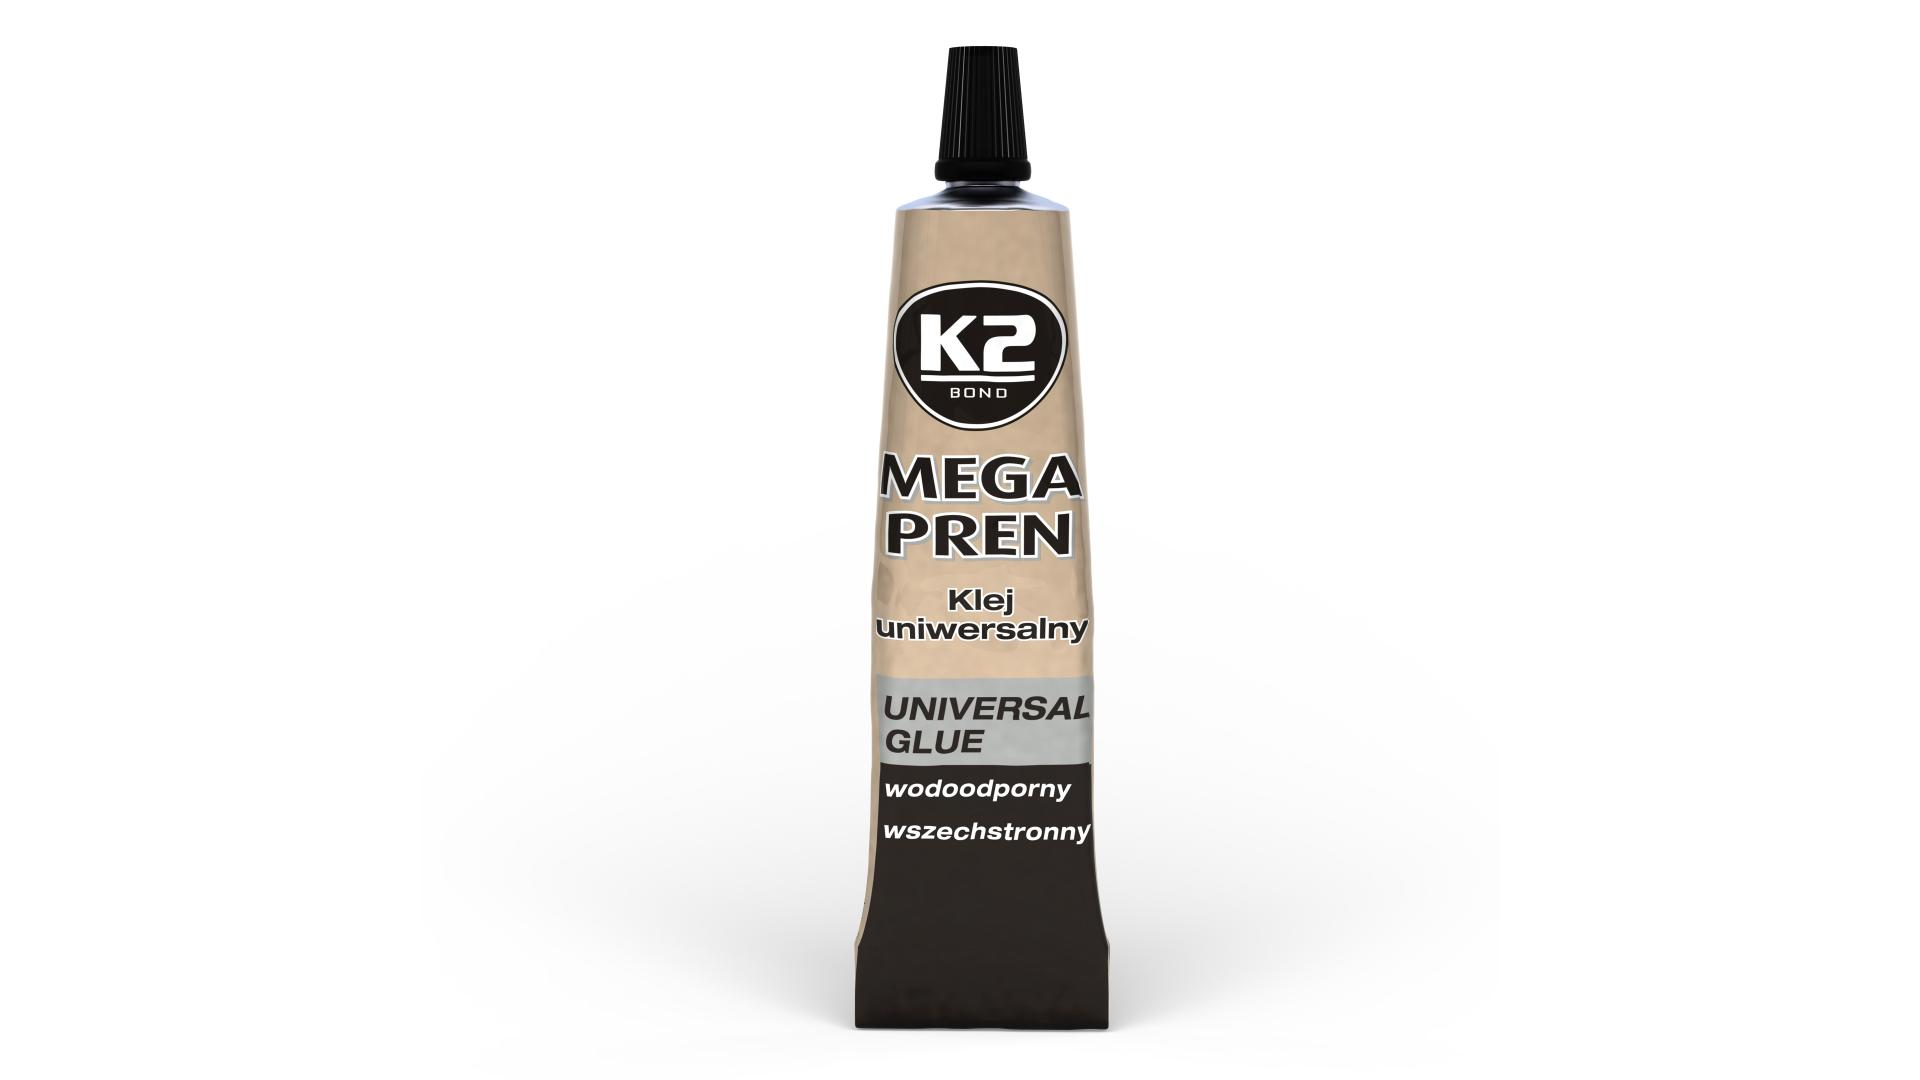 K2 Lepidlo Mega Pren 40 ml